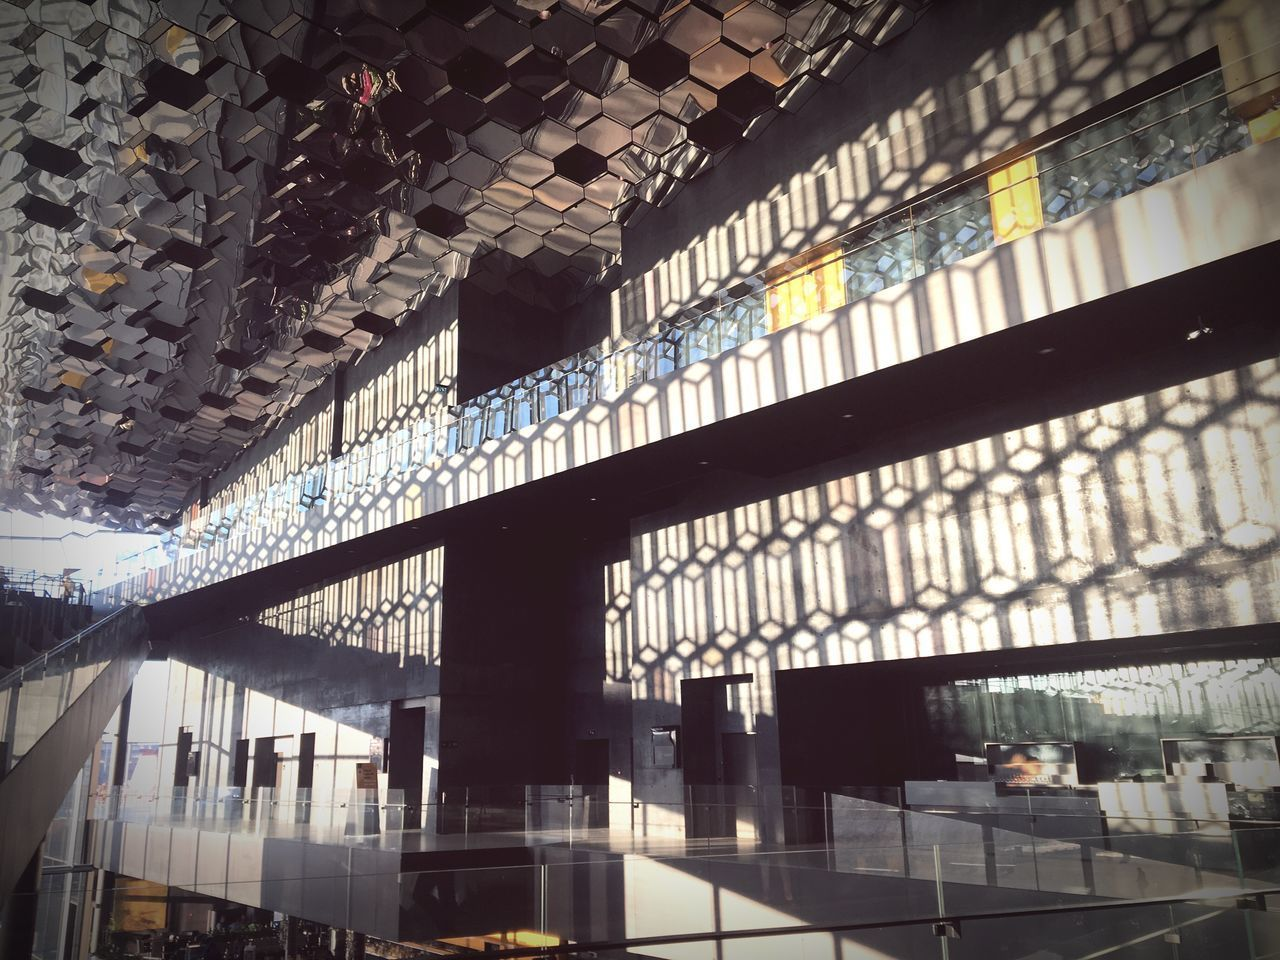 Harpa Harpa Reykjavik Architecture Glass Façade Reykjavik Capital Cities  Iceland Opera House Interior Architecture Indoors  Glass Light Reflection Hexagon Structure Olafur Eliasson Public Places No People